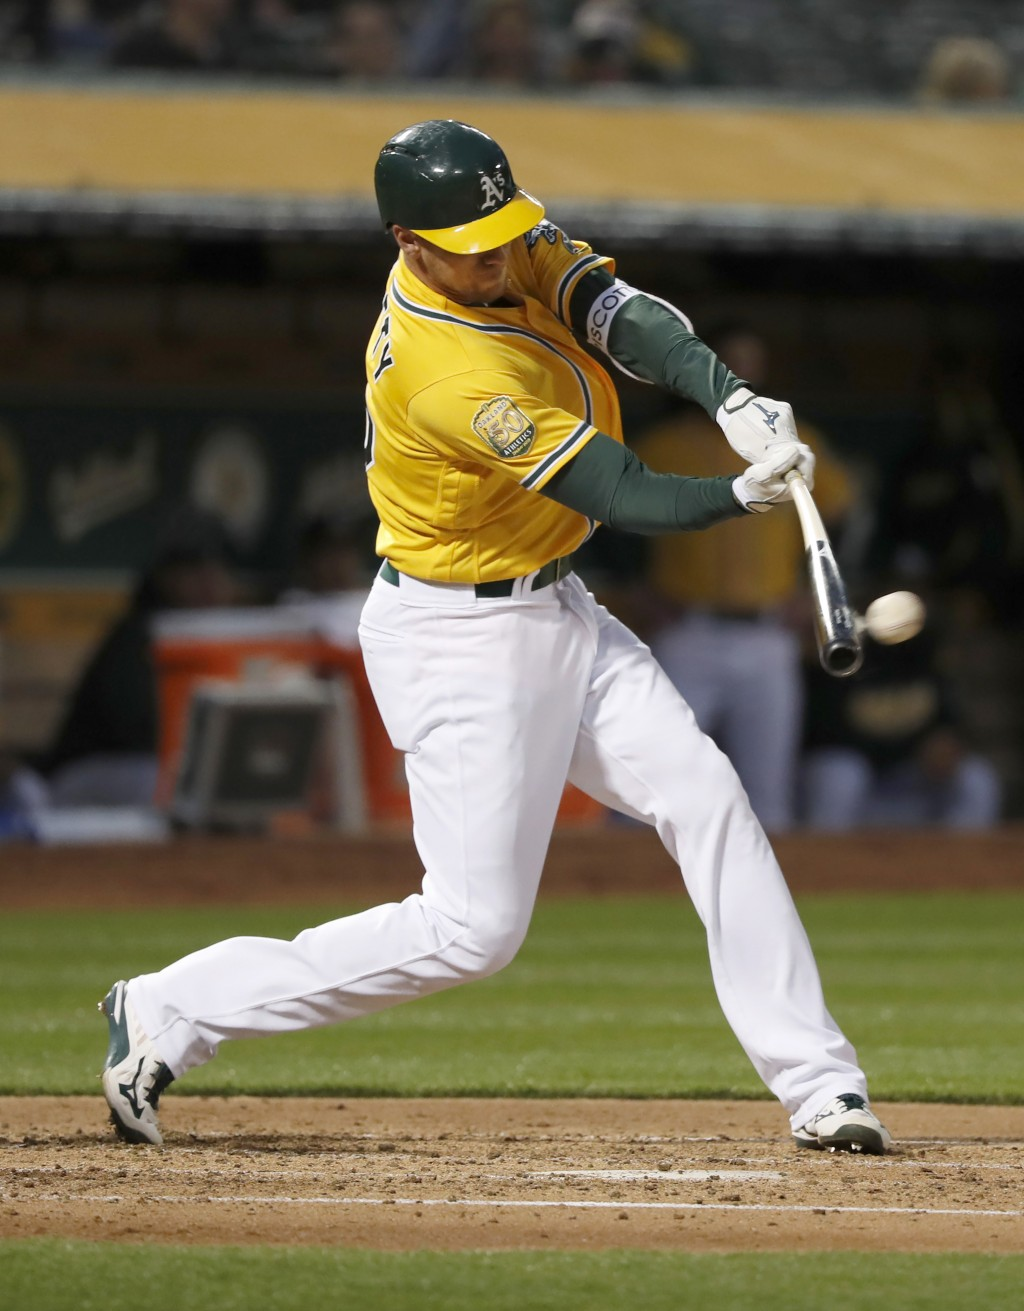 Oakland Athletics' Stephen Piscotty (25) hits a double against the Chicago White Sox during the second inning of a baseball game Monday, April 16, 201